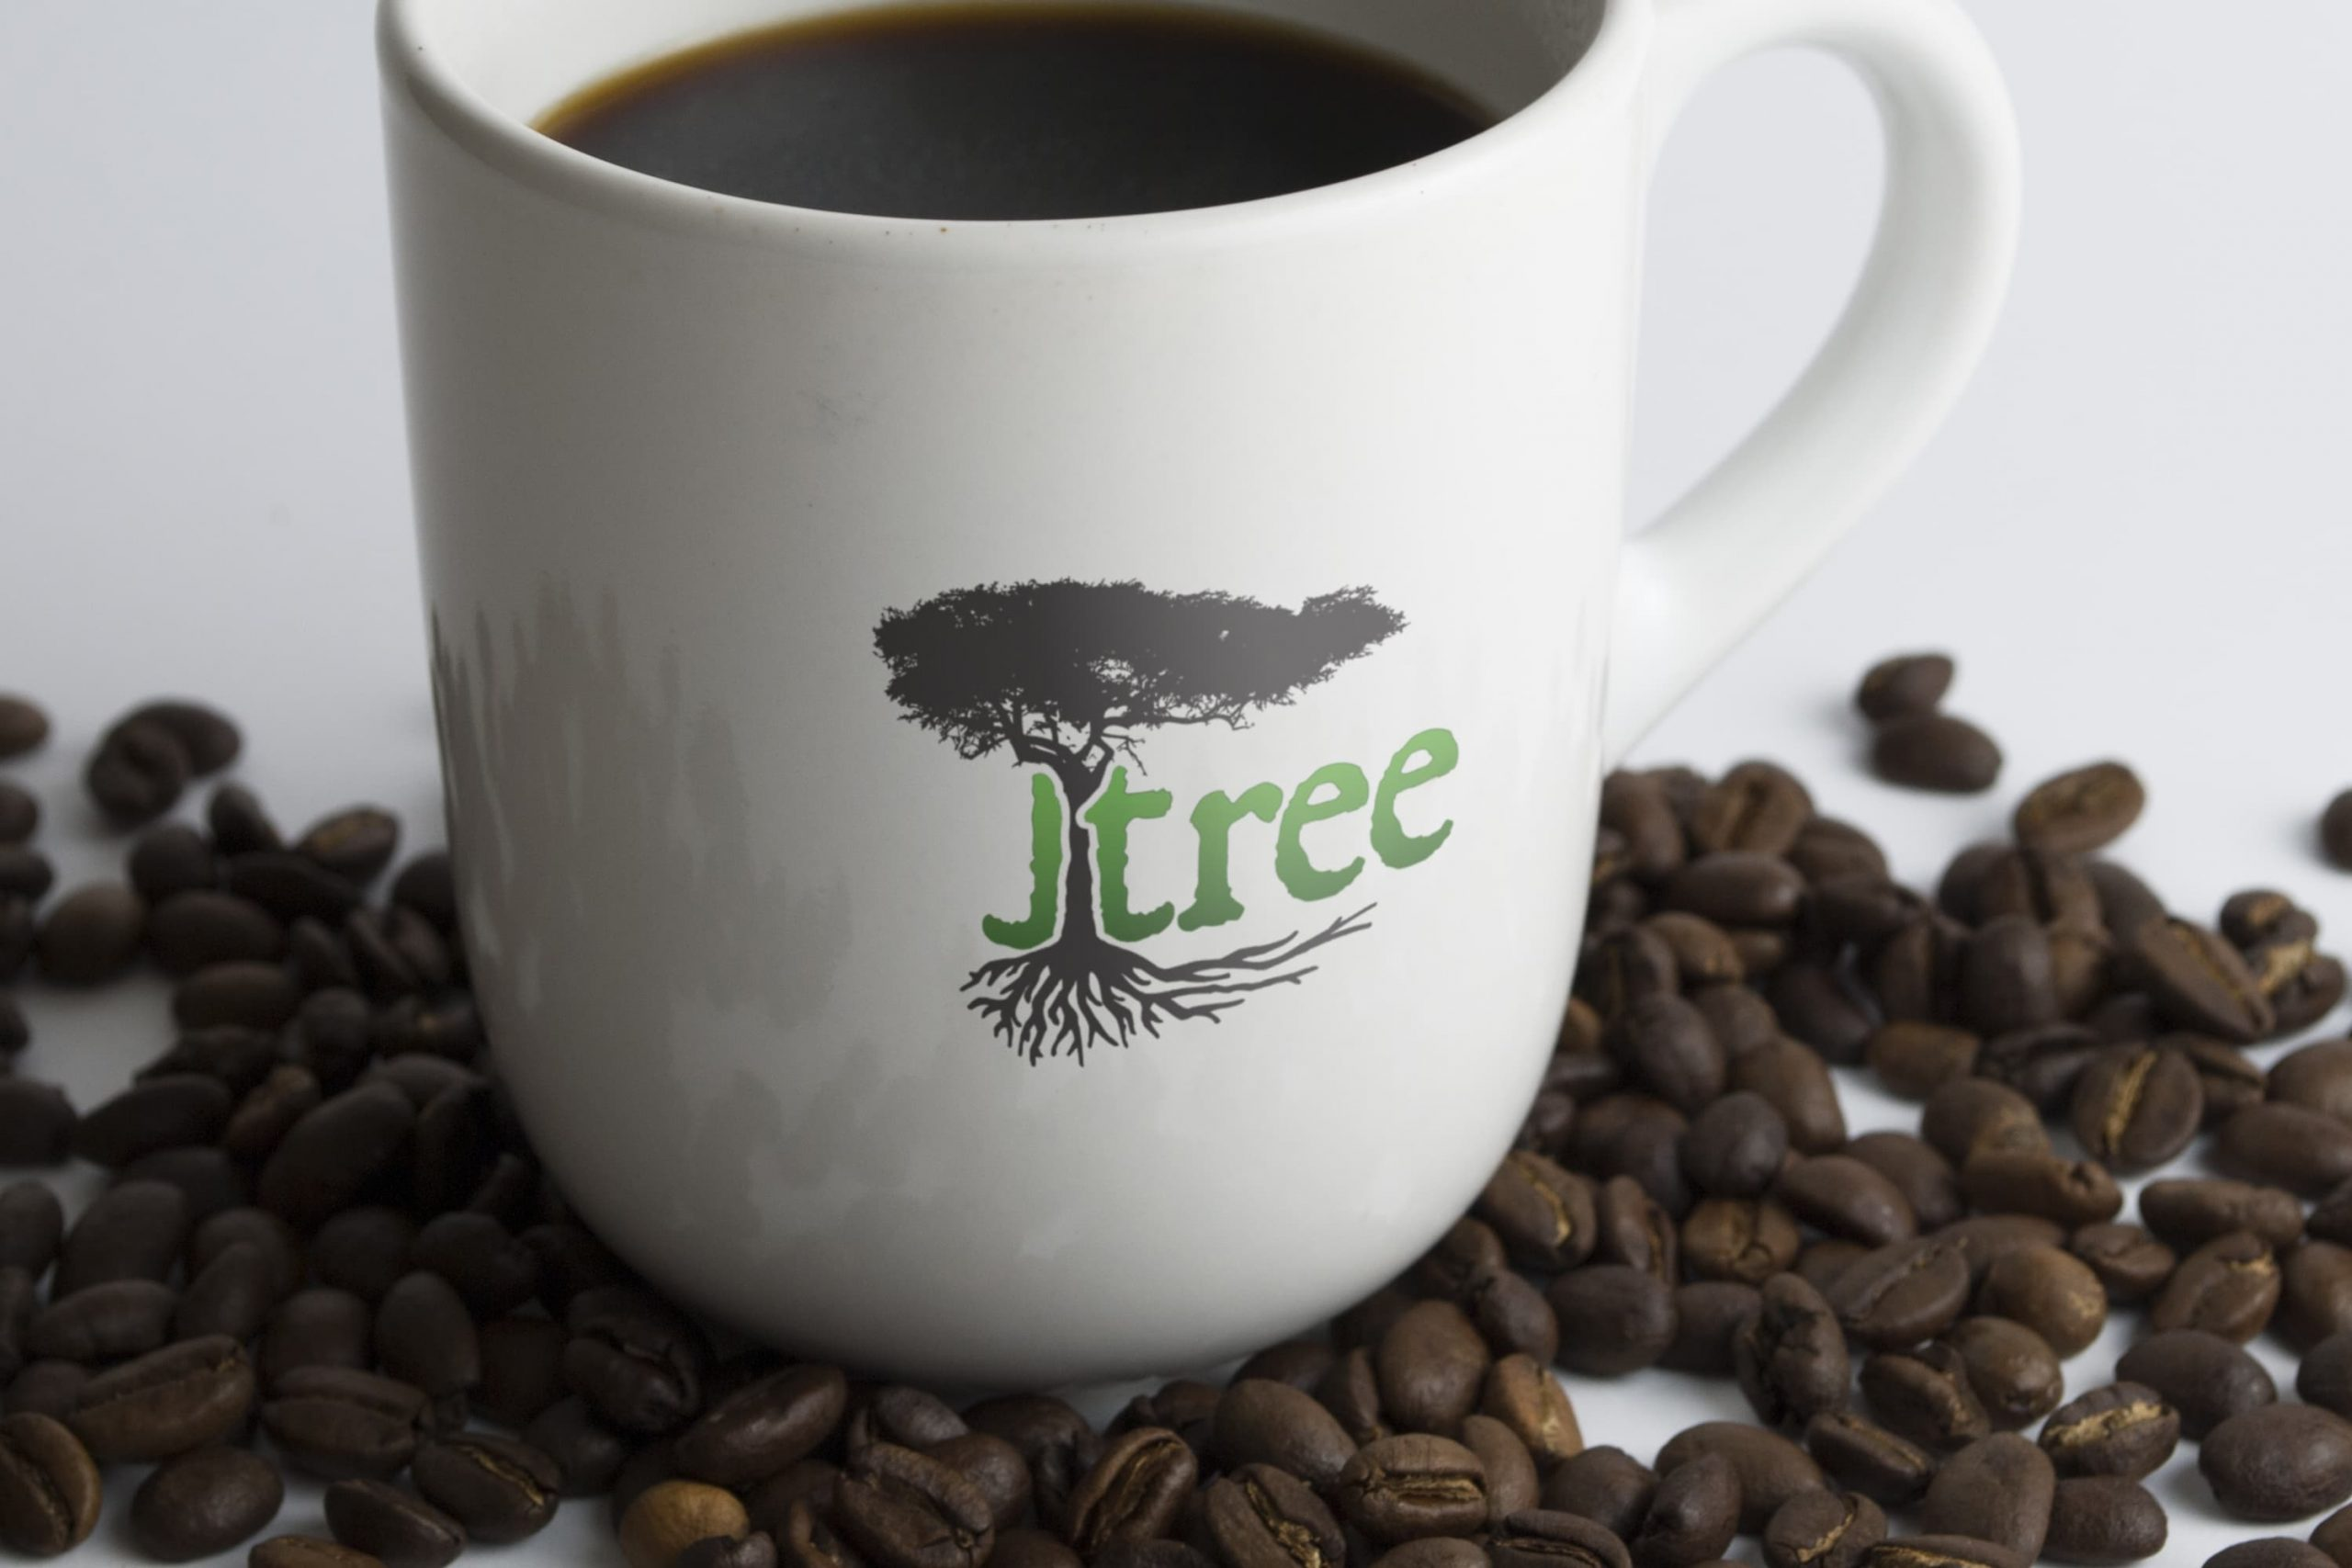 Jtree SEO Coffee